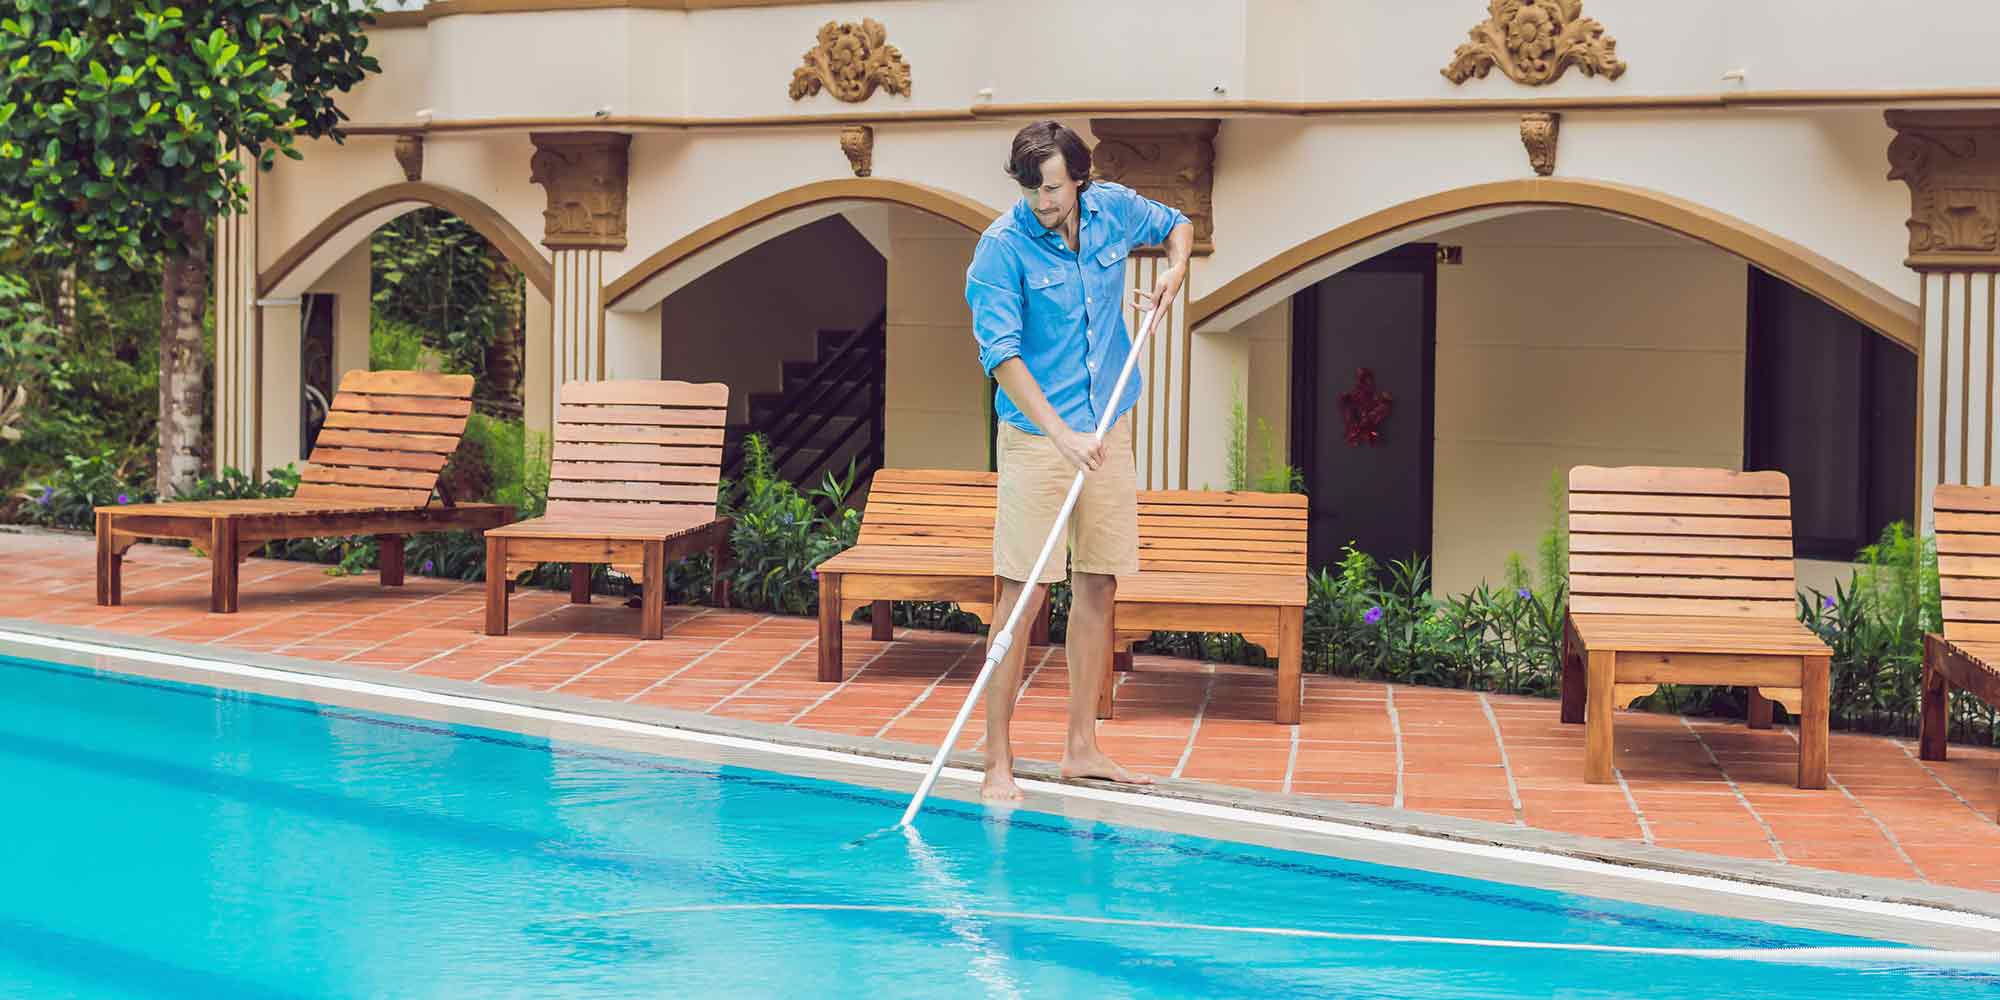 Swimming Pool Management Is Essential For Complete Safety